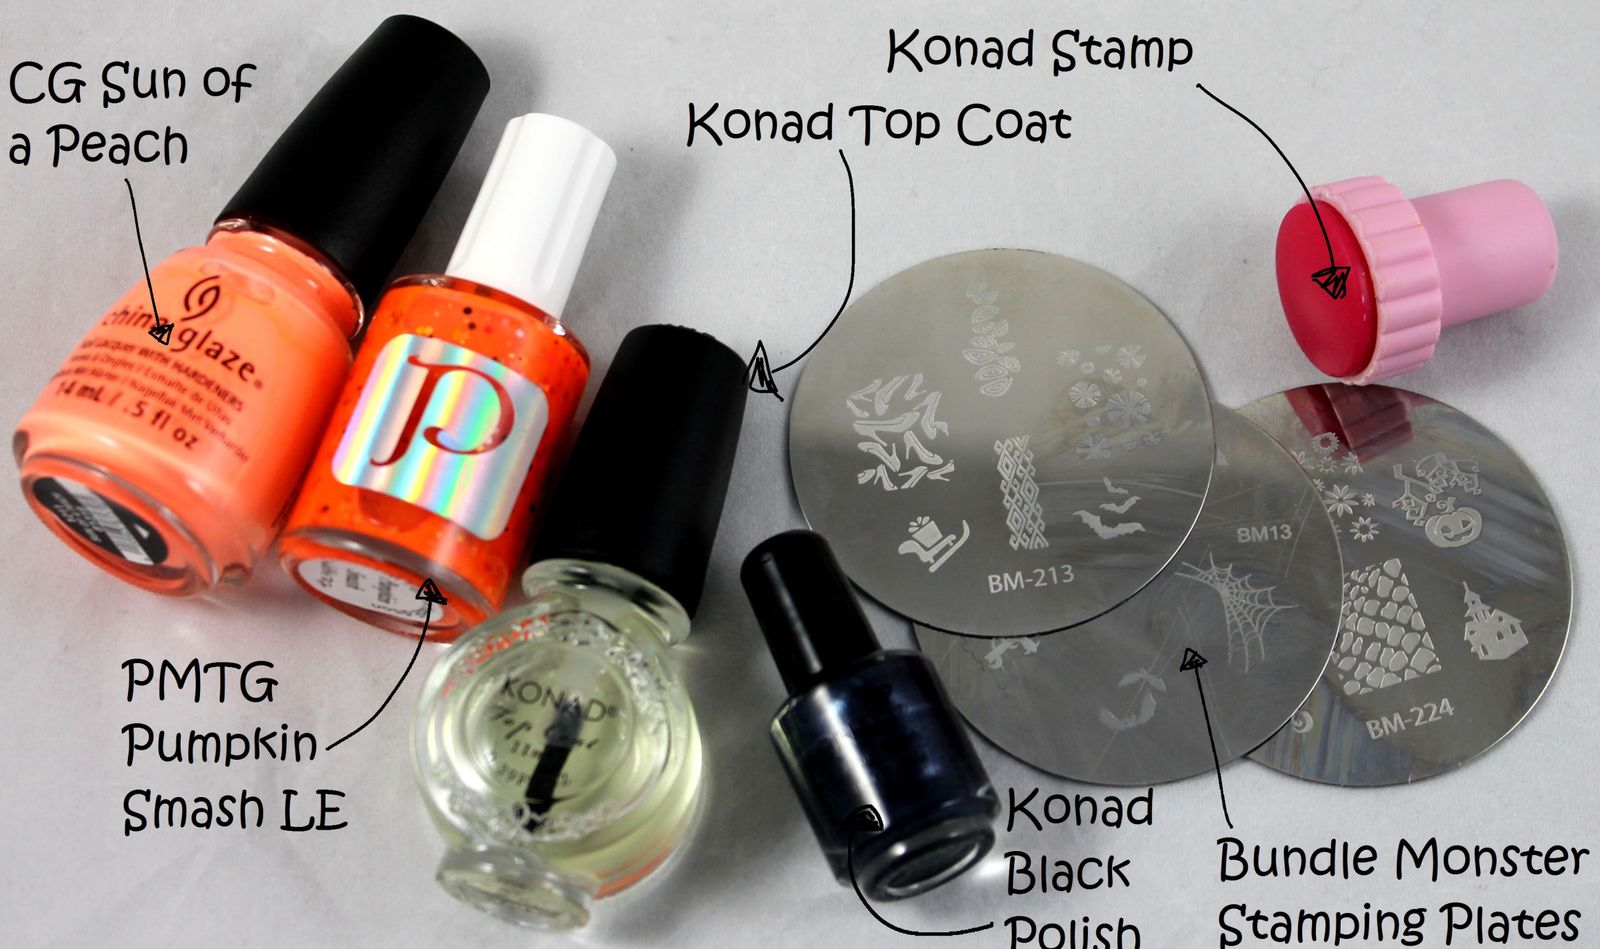 Bundle Monster Stamping Plates BM-13, BM-213 and BM-224 / Konad Black Polish / Konad Top Coat